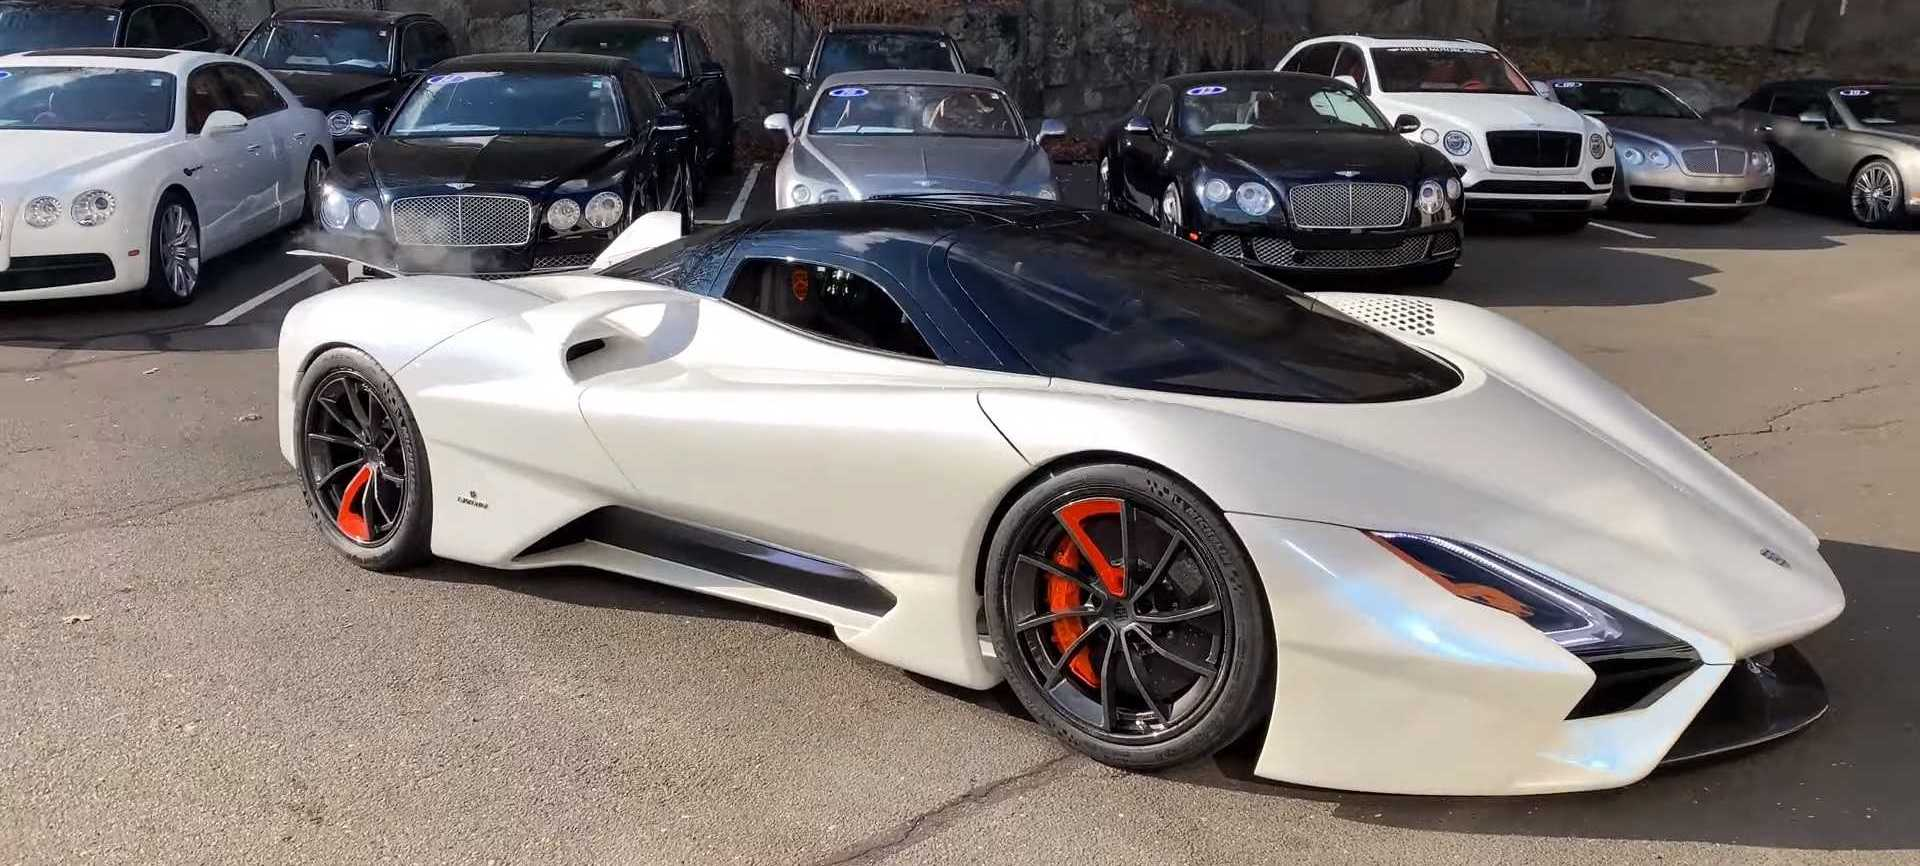 SSC Tuatara Looks Like A Spaceship In Walkaround Video